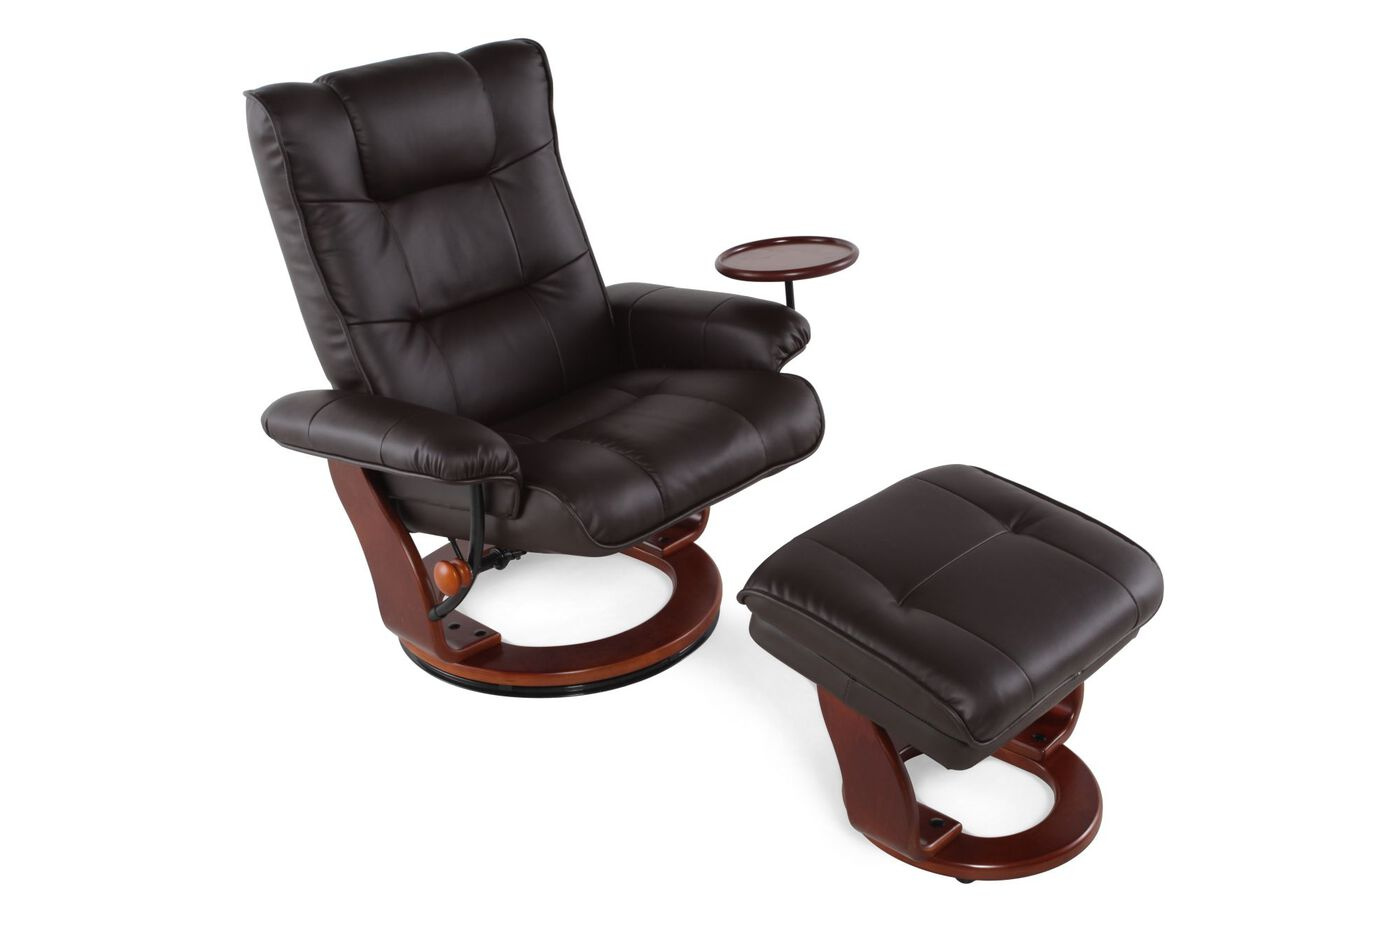 contemporary  swivel reclining chair . contemporary  swivel reclining chair and ottoman in brown